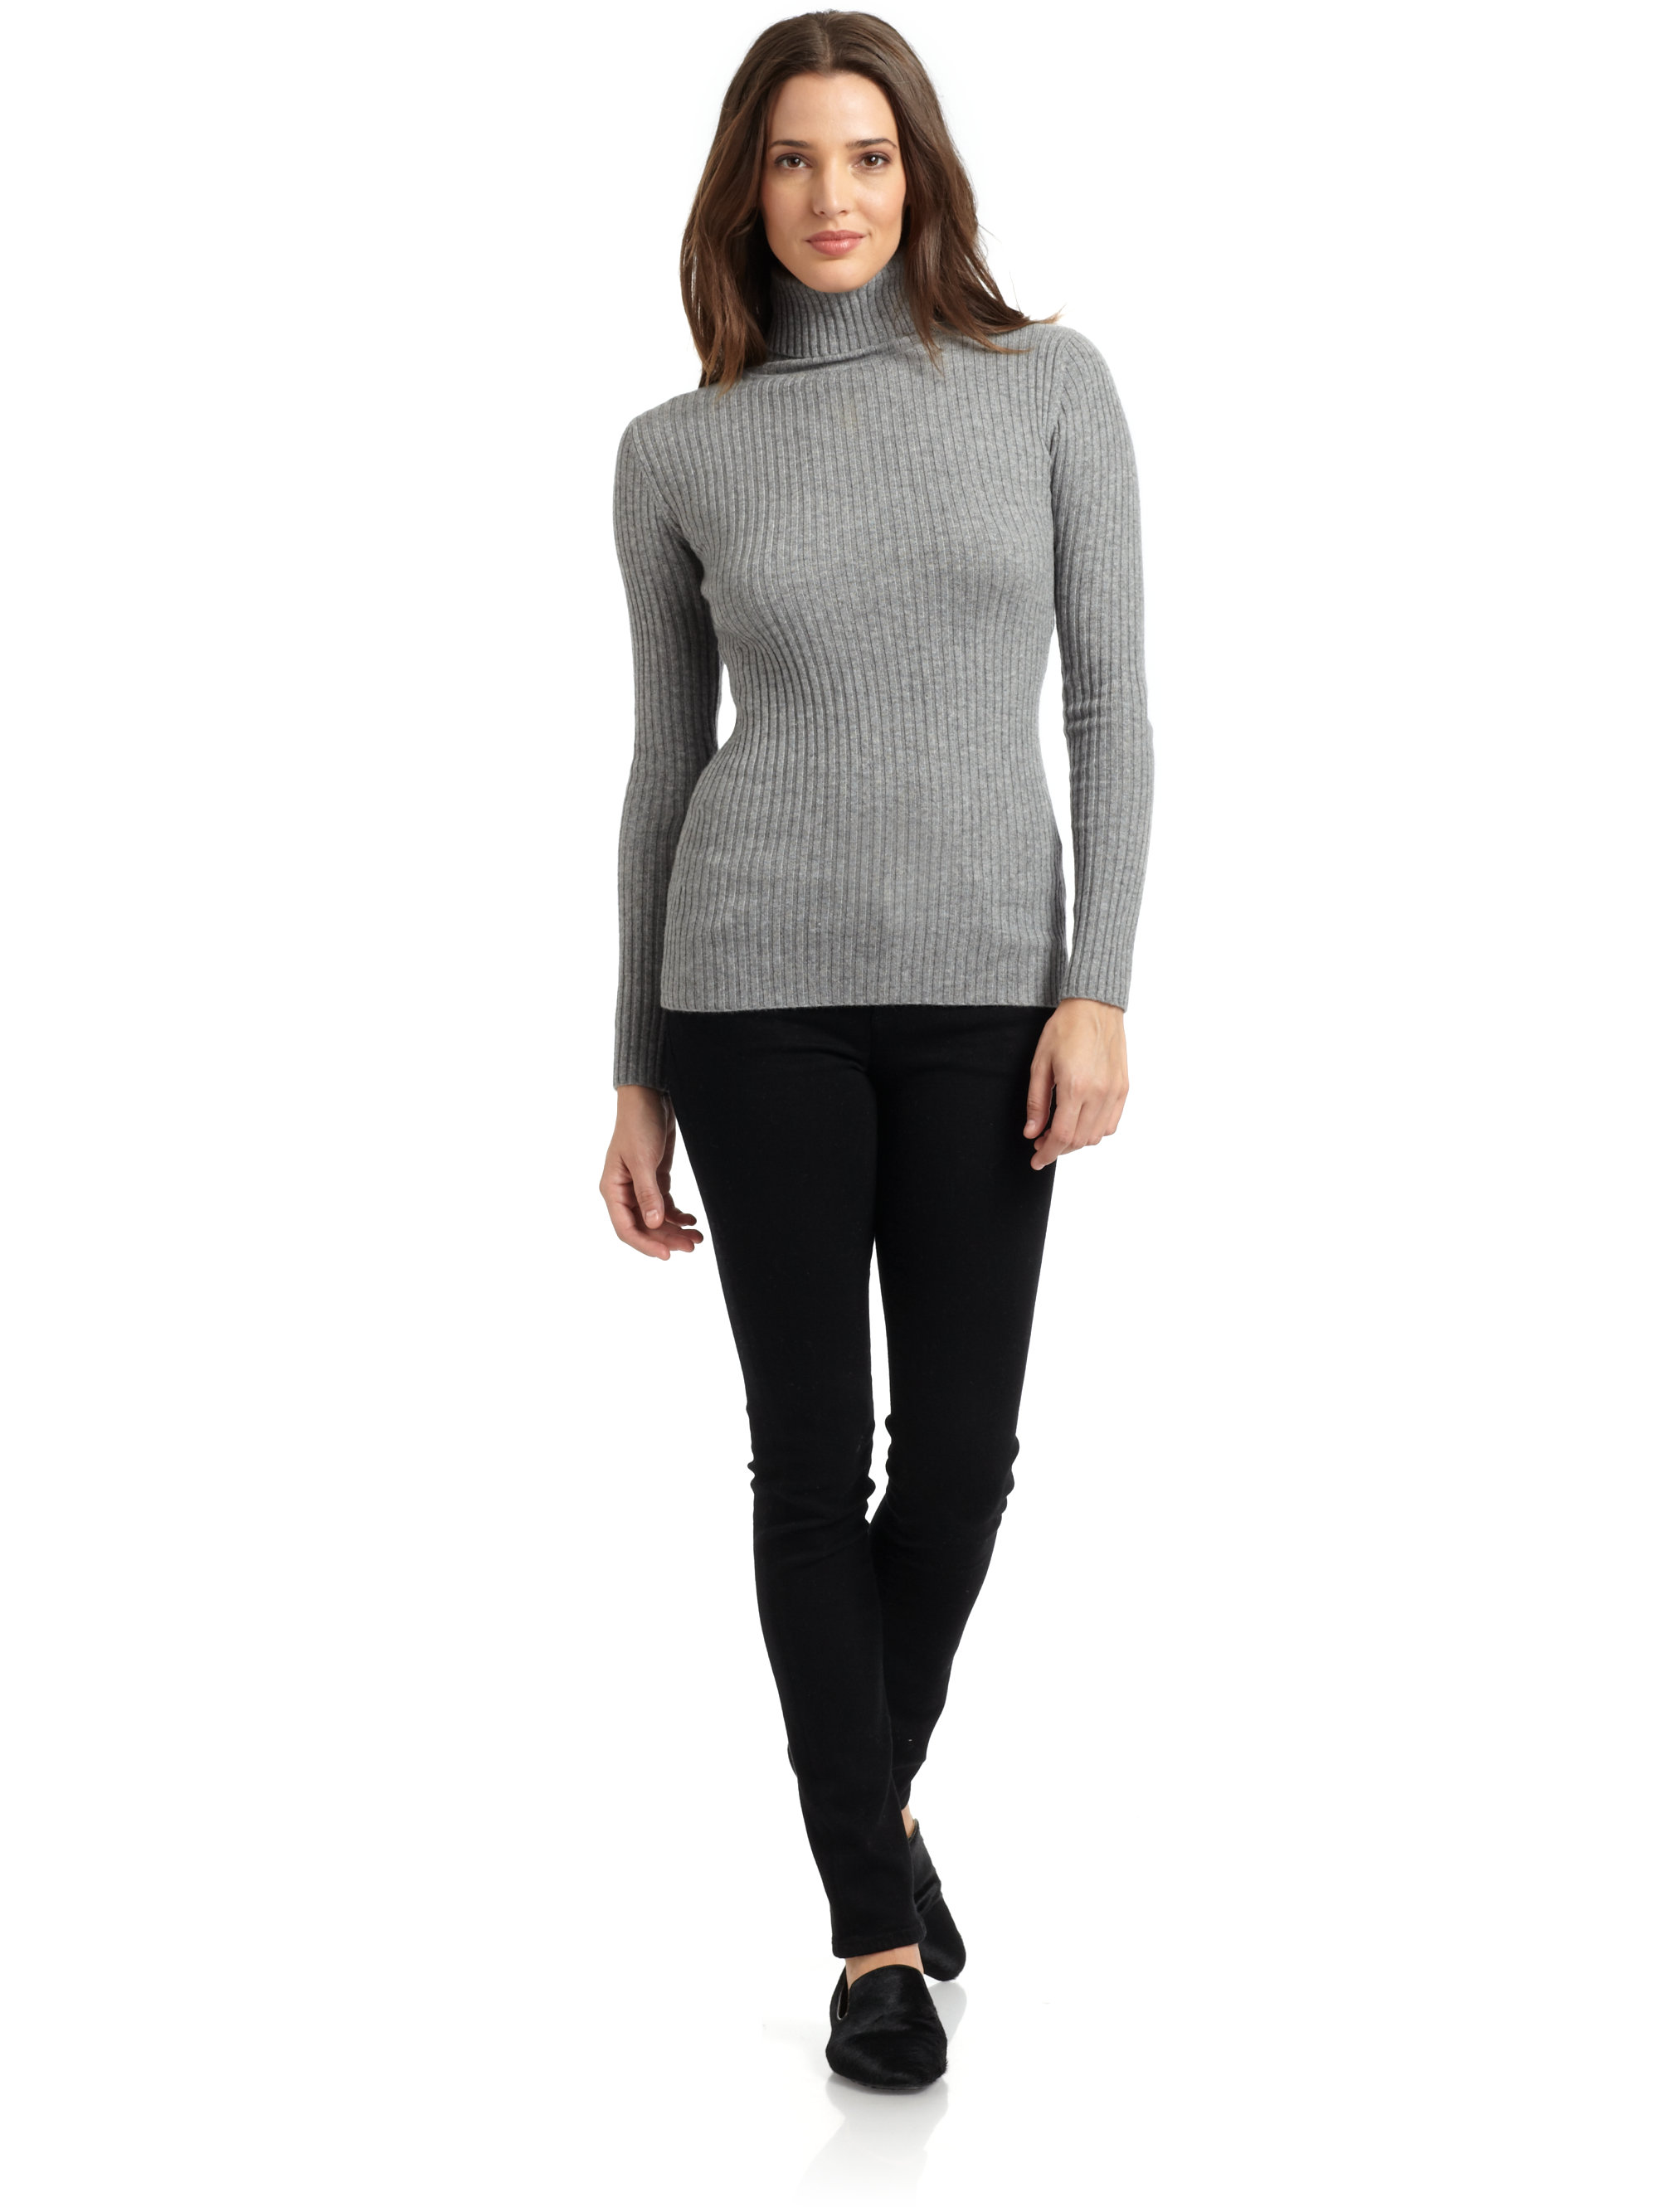 Autumn cashmere Cashmere Ribbed Turtleneck Sweater in Gray | Lyst